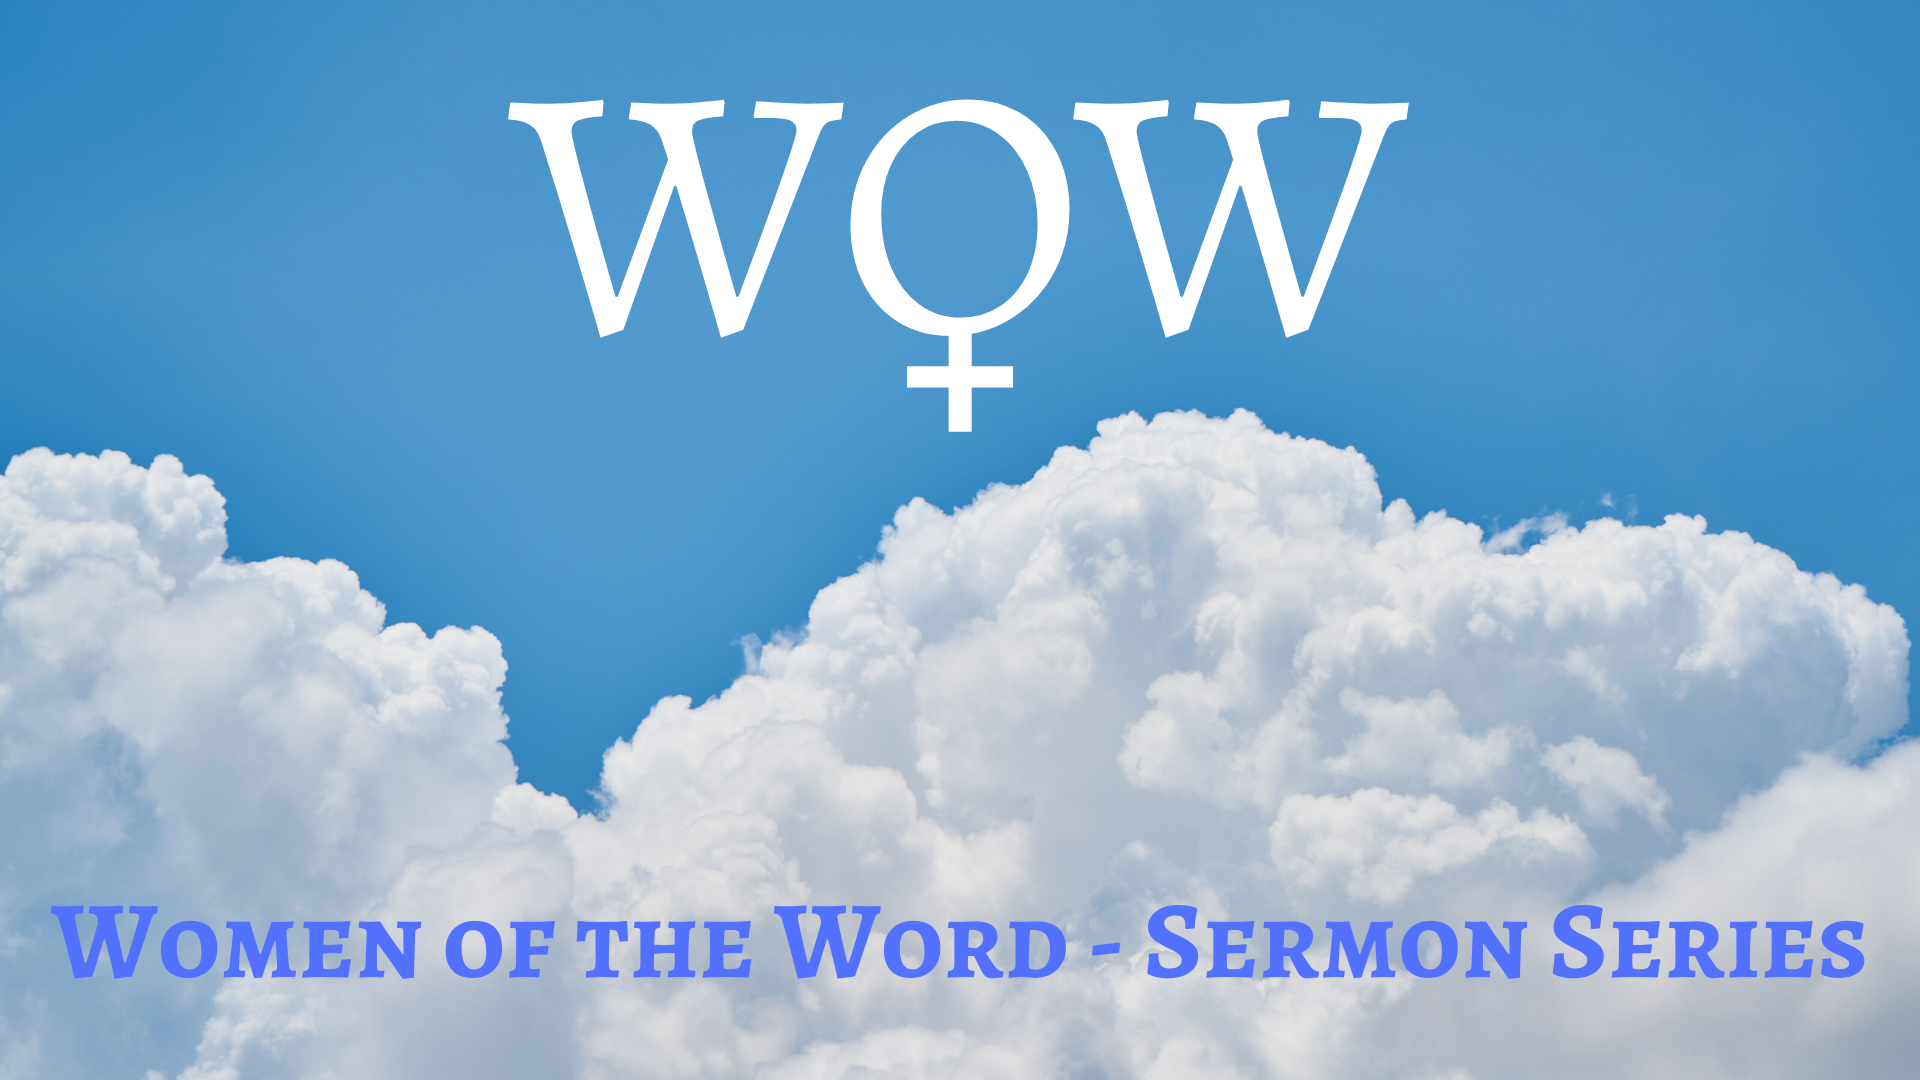 Women of the Word Sermon Series.png (1.69 MB)